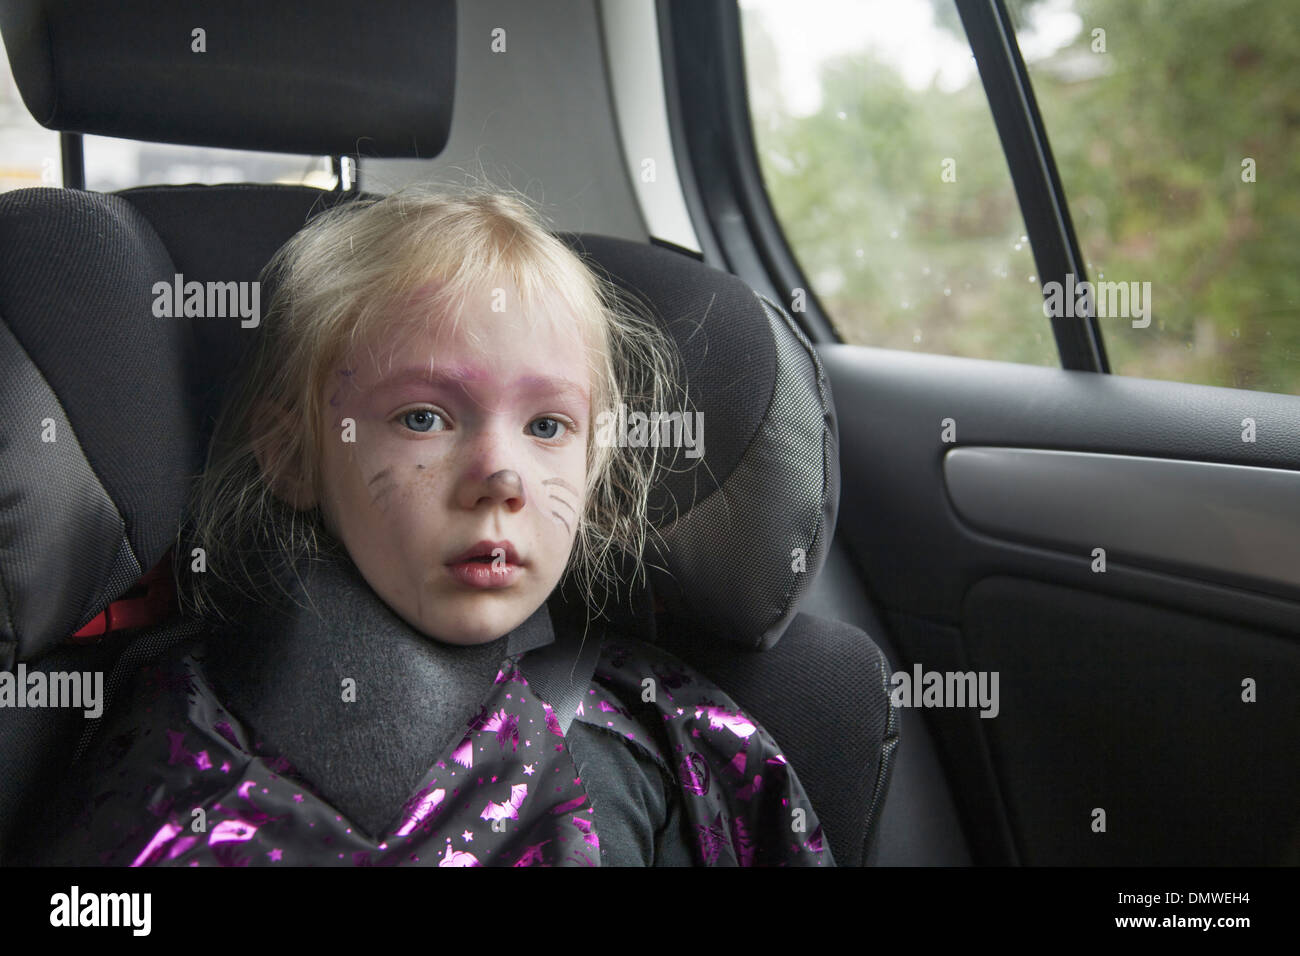 A young girl in a car seat in Halloween costume. - Stock Image